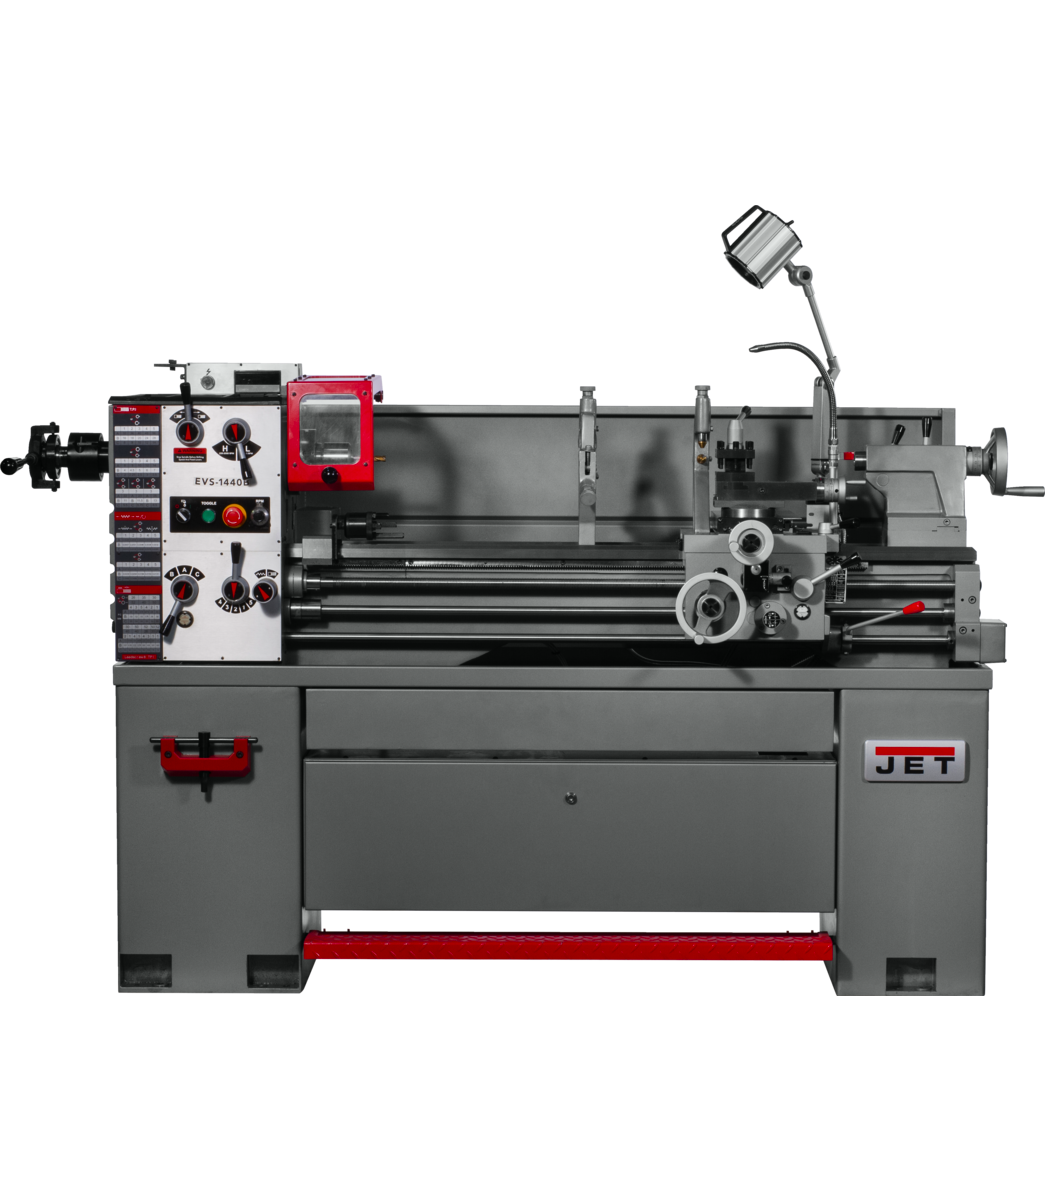 EVS-1440 Electronic Variable Speed lathe with Acu_rite 203 DRO, Taper Attachment & Collet Closer,3HP